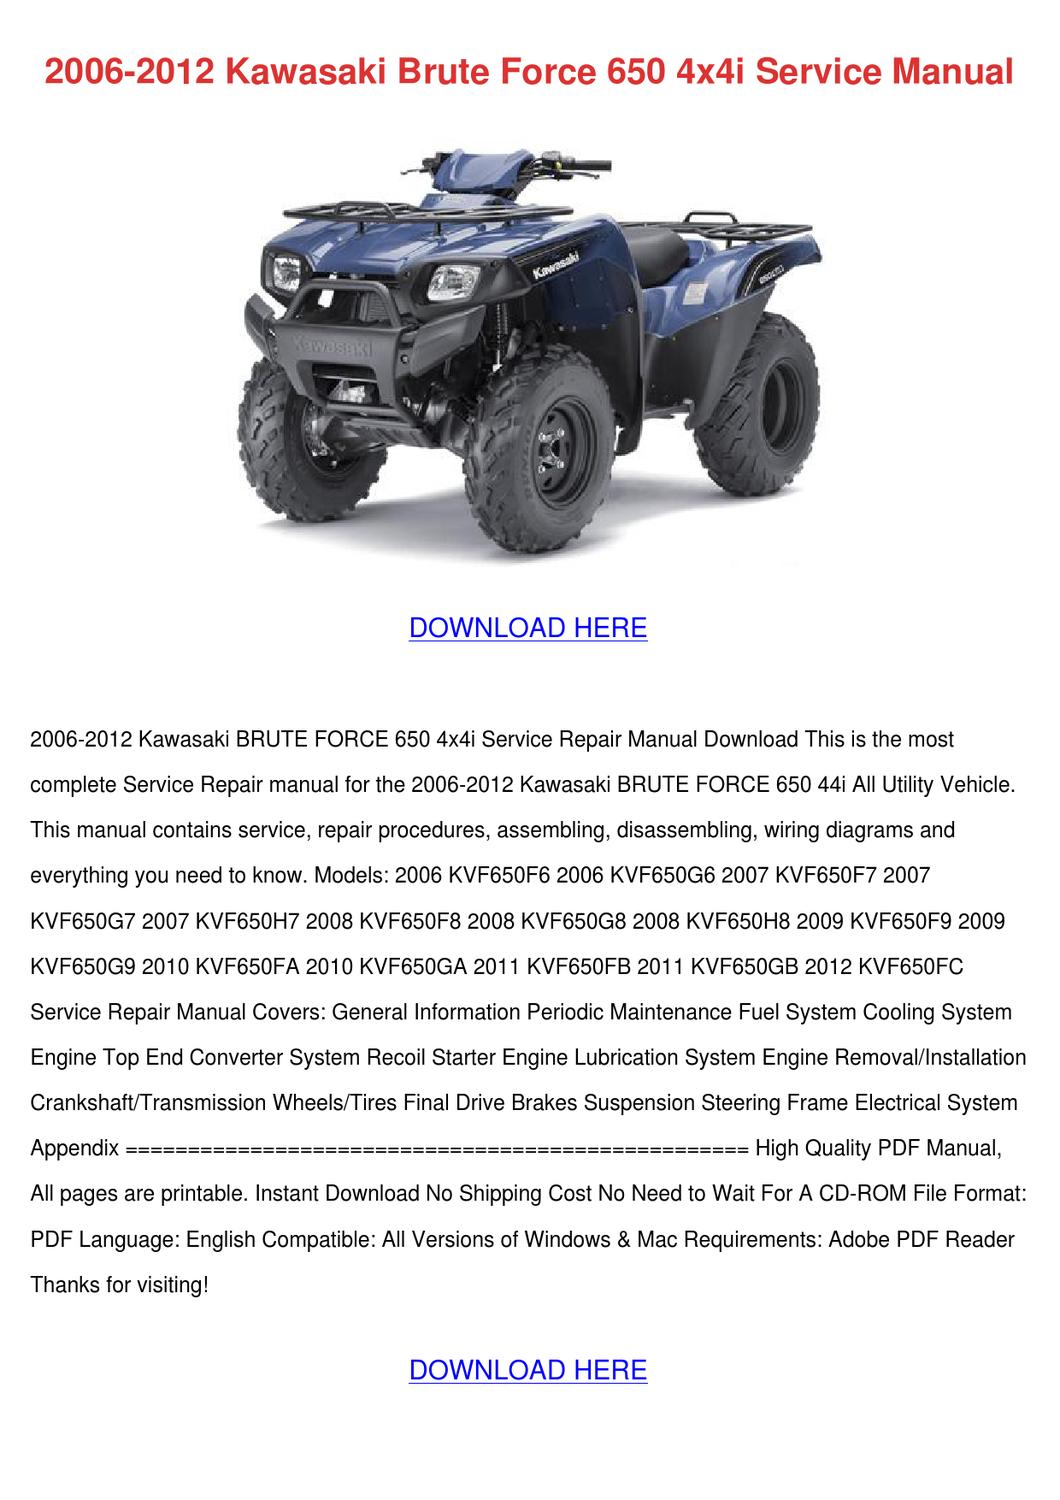 09 brute force 750 wiring diagram 2006 2012 kawasaki brute force 650 4x4i servi by ... 2006 kawasaki brute force 650 wiring diagram